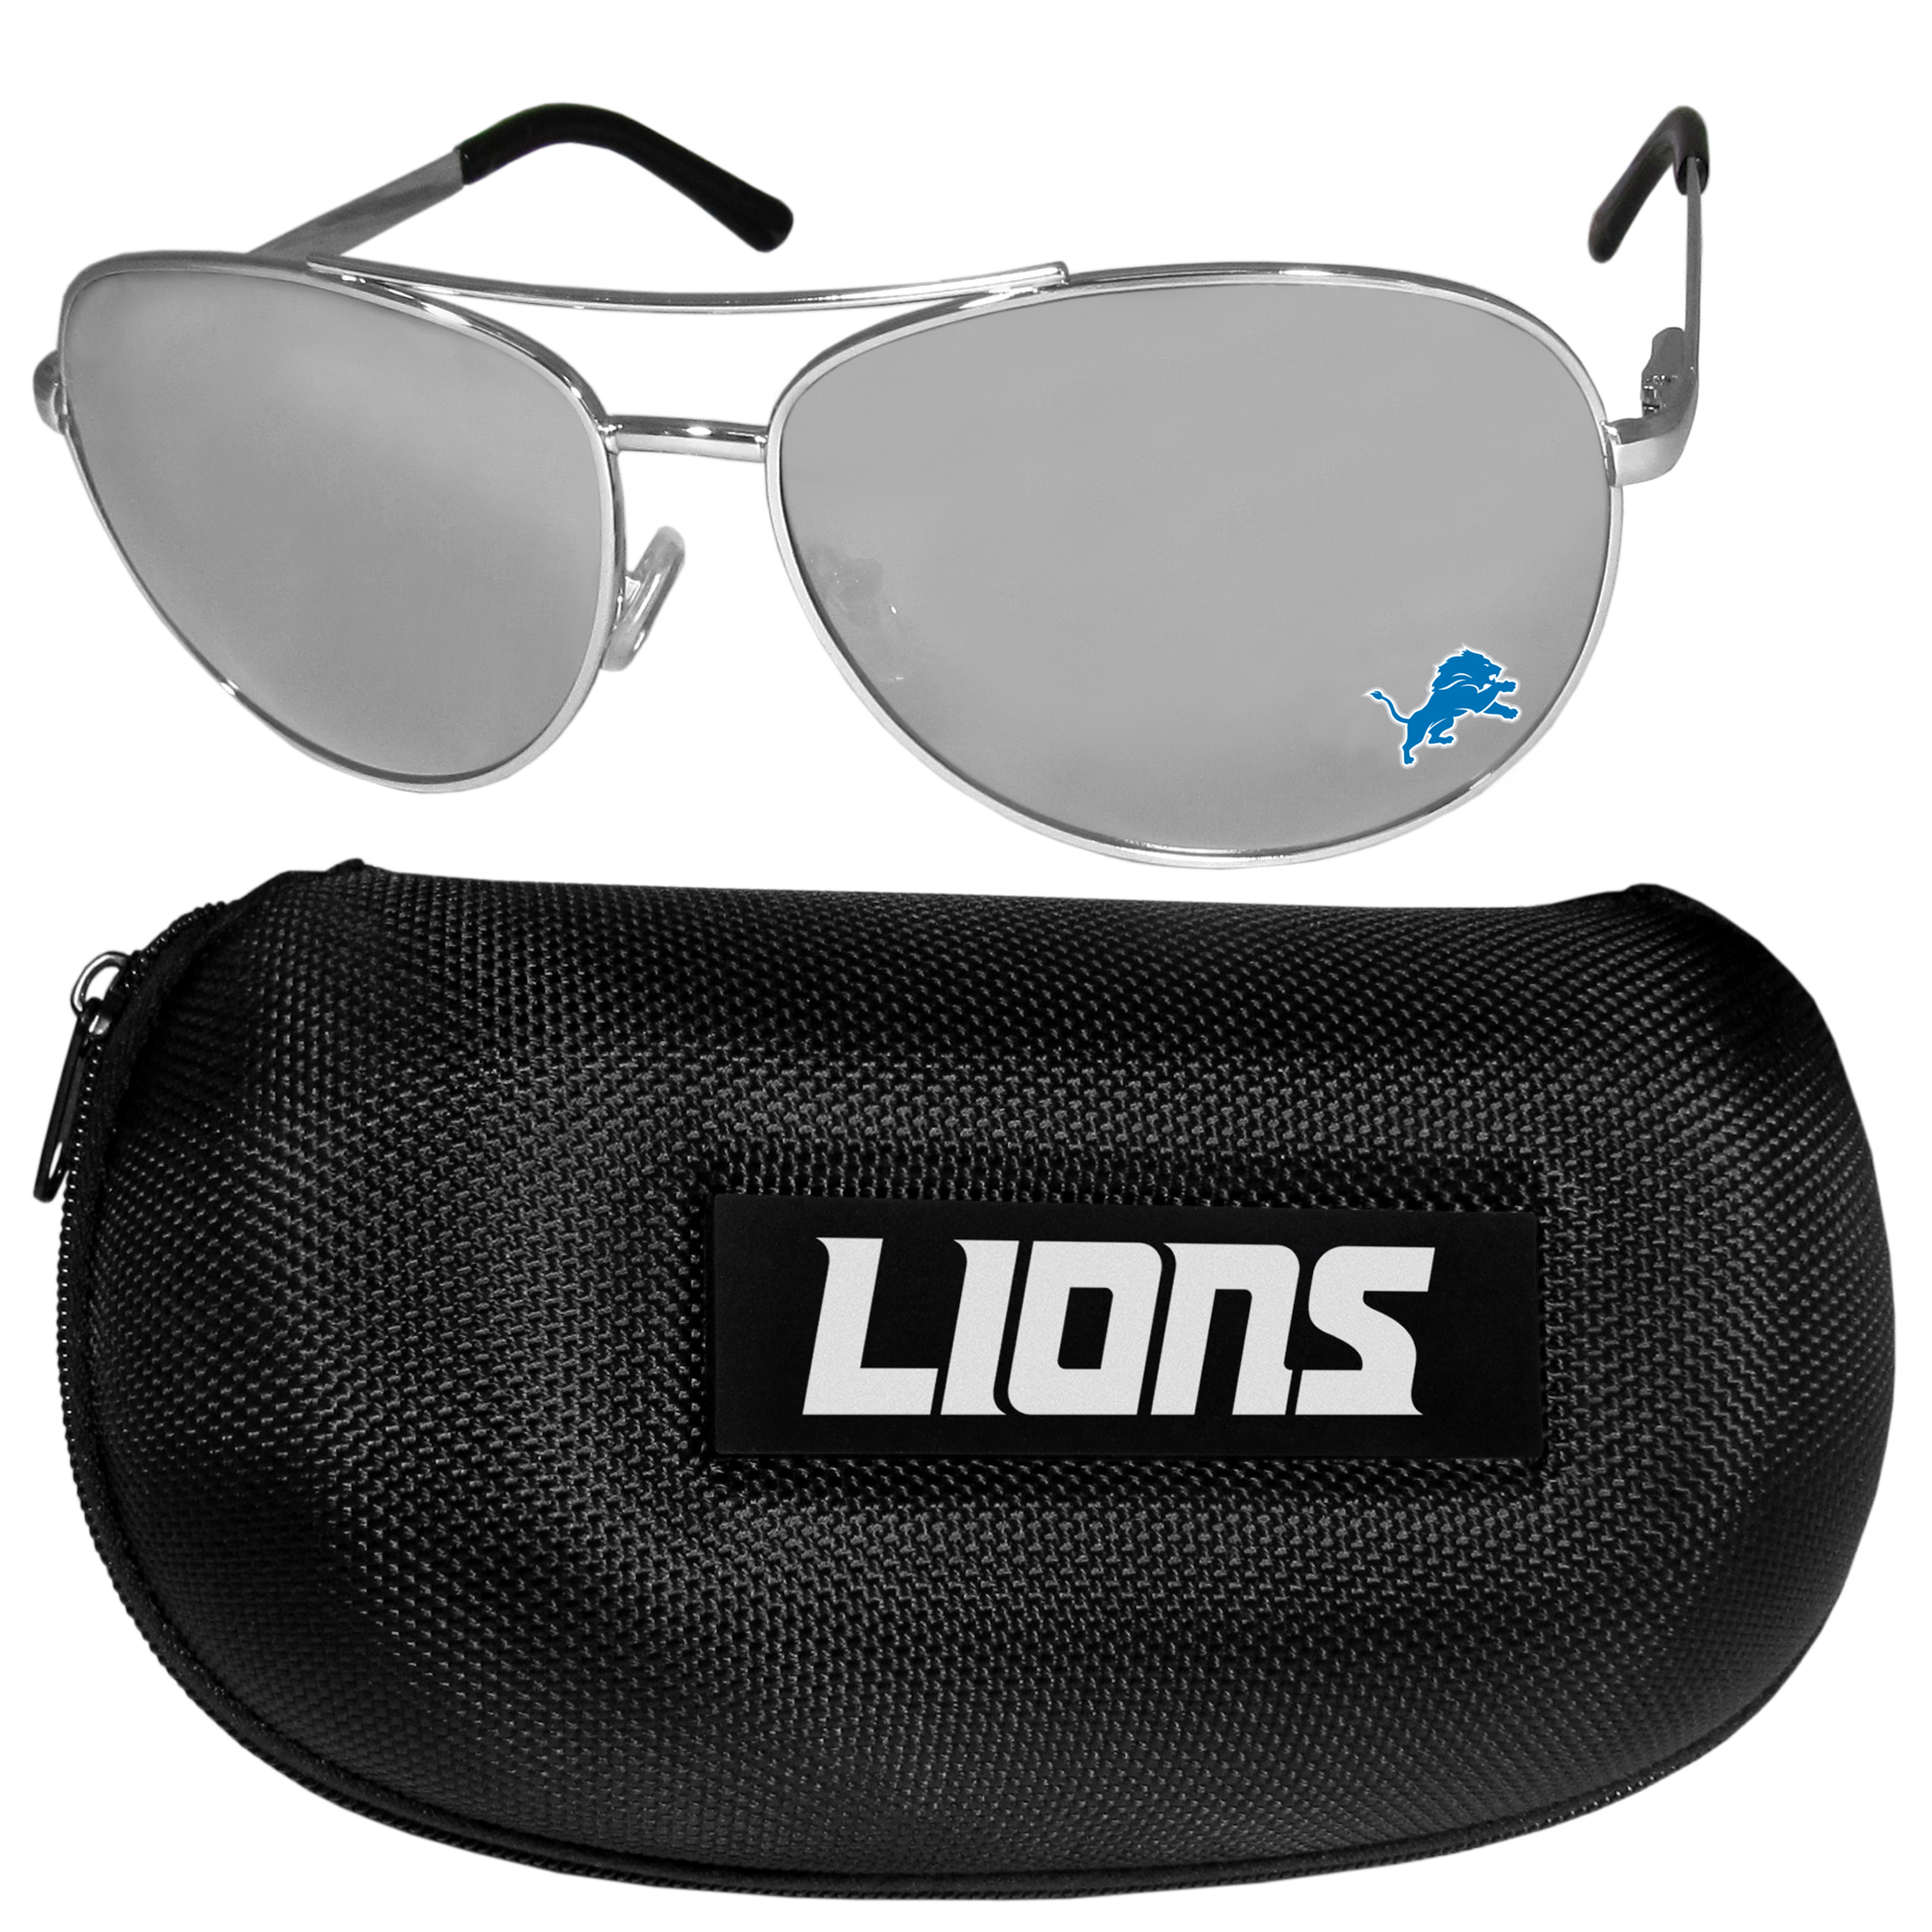 Detroit Lions Aviator Sunglasses and Zippered Carrying Case - Aviator sunglasses are truly an iconic retro fashion statement that never goes out-of-style. Our Detroit Lions  aviator sunglasses pair this classic look with your love of the game. The iridium coated lenses reduce glare while driving, boating, golfing and their 100% UVA/UVB rating provides you with the maximum UV protection for all your outdoor activities. A millennial favorite, these affordable designer frames are the perfect eyewear accessory for a sports fan that is looking for high-quality at an affordable price. The durable, flex hinged frames are tough enough for hiking and camping or if you prefer sun bathing by the pool or on the beach these shades will really stand the test of time. The sunglasses come with a hard shell zippered case which has a large team logo on the lid that will make even the most die-hard fan proud!